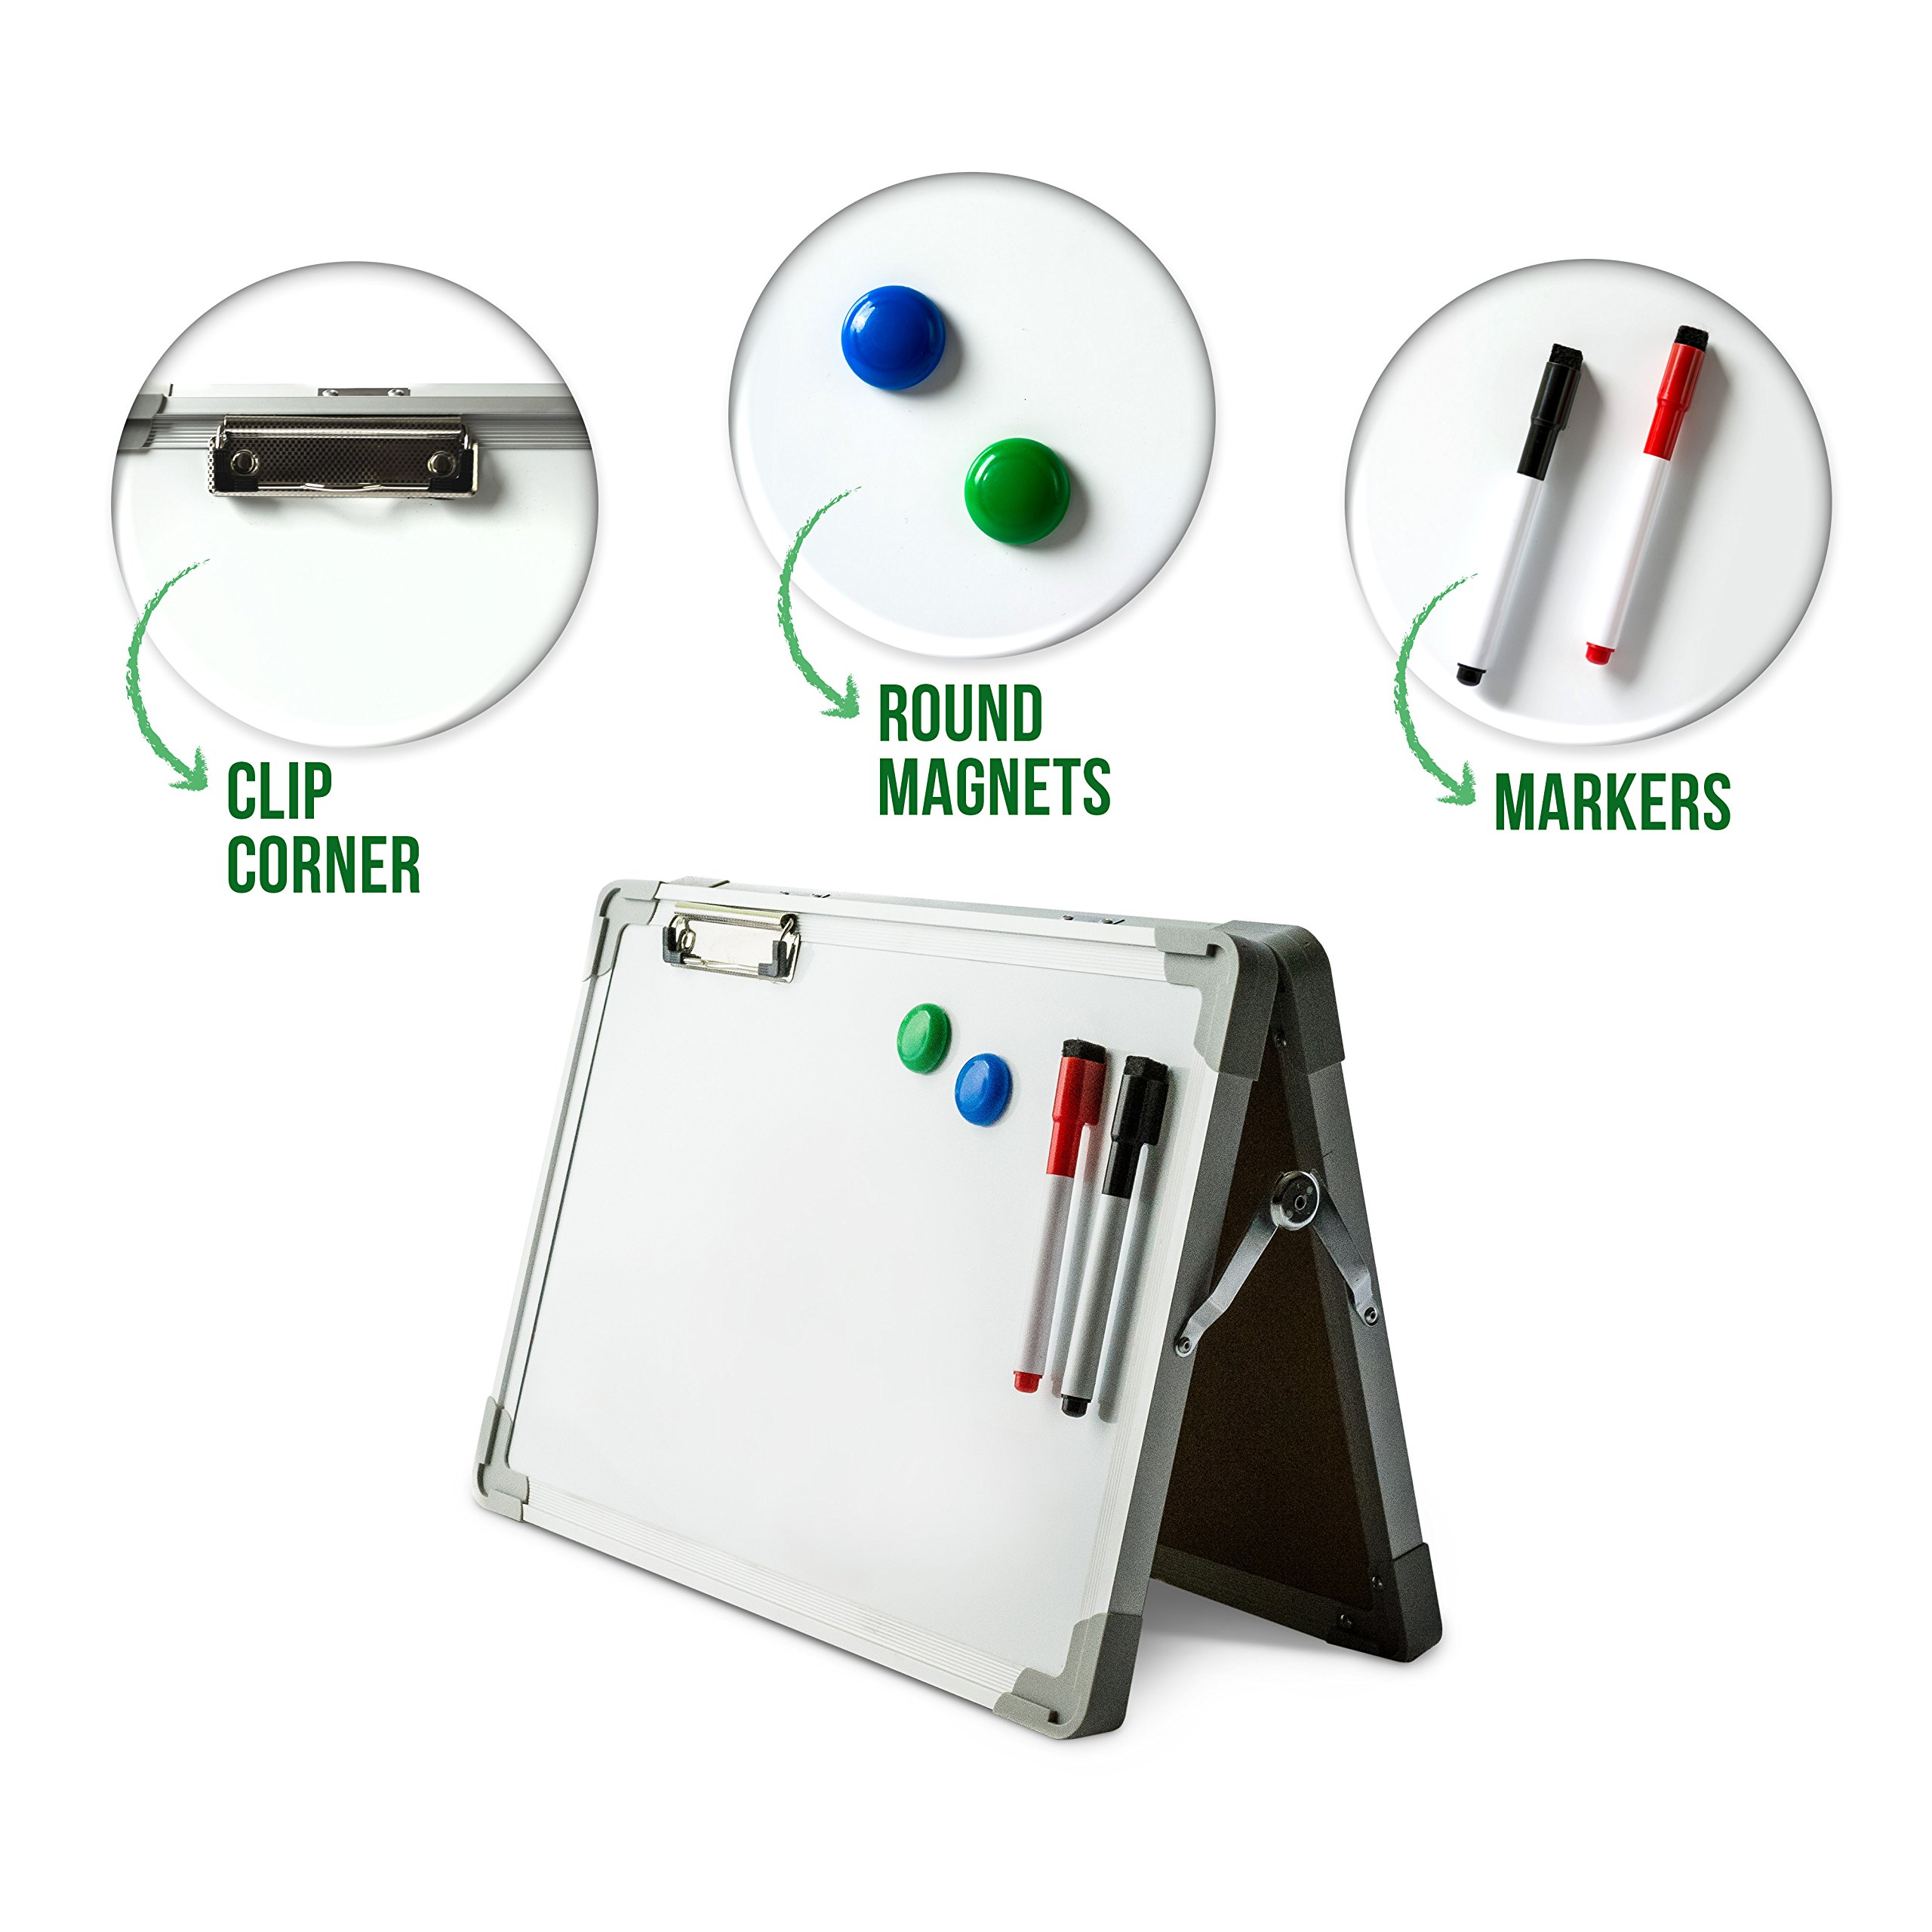 Ibex DryErase Desktop Whiteboard Easel: Magnetic Tabletop Double Sided Non Ghosting White Board, Portable Erasable Whiteboards with Paper Clip, 2 Magnets & 2 Color Markers with Eraser Tip